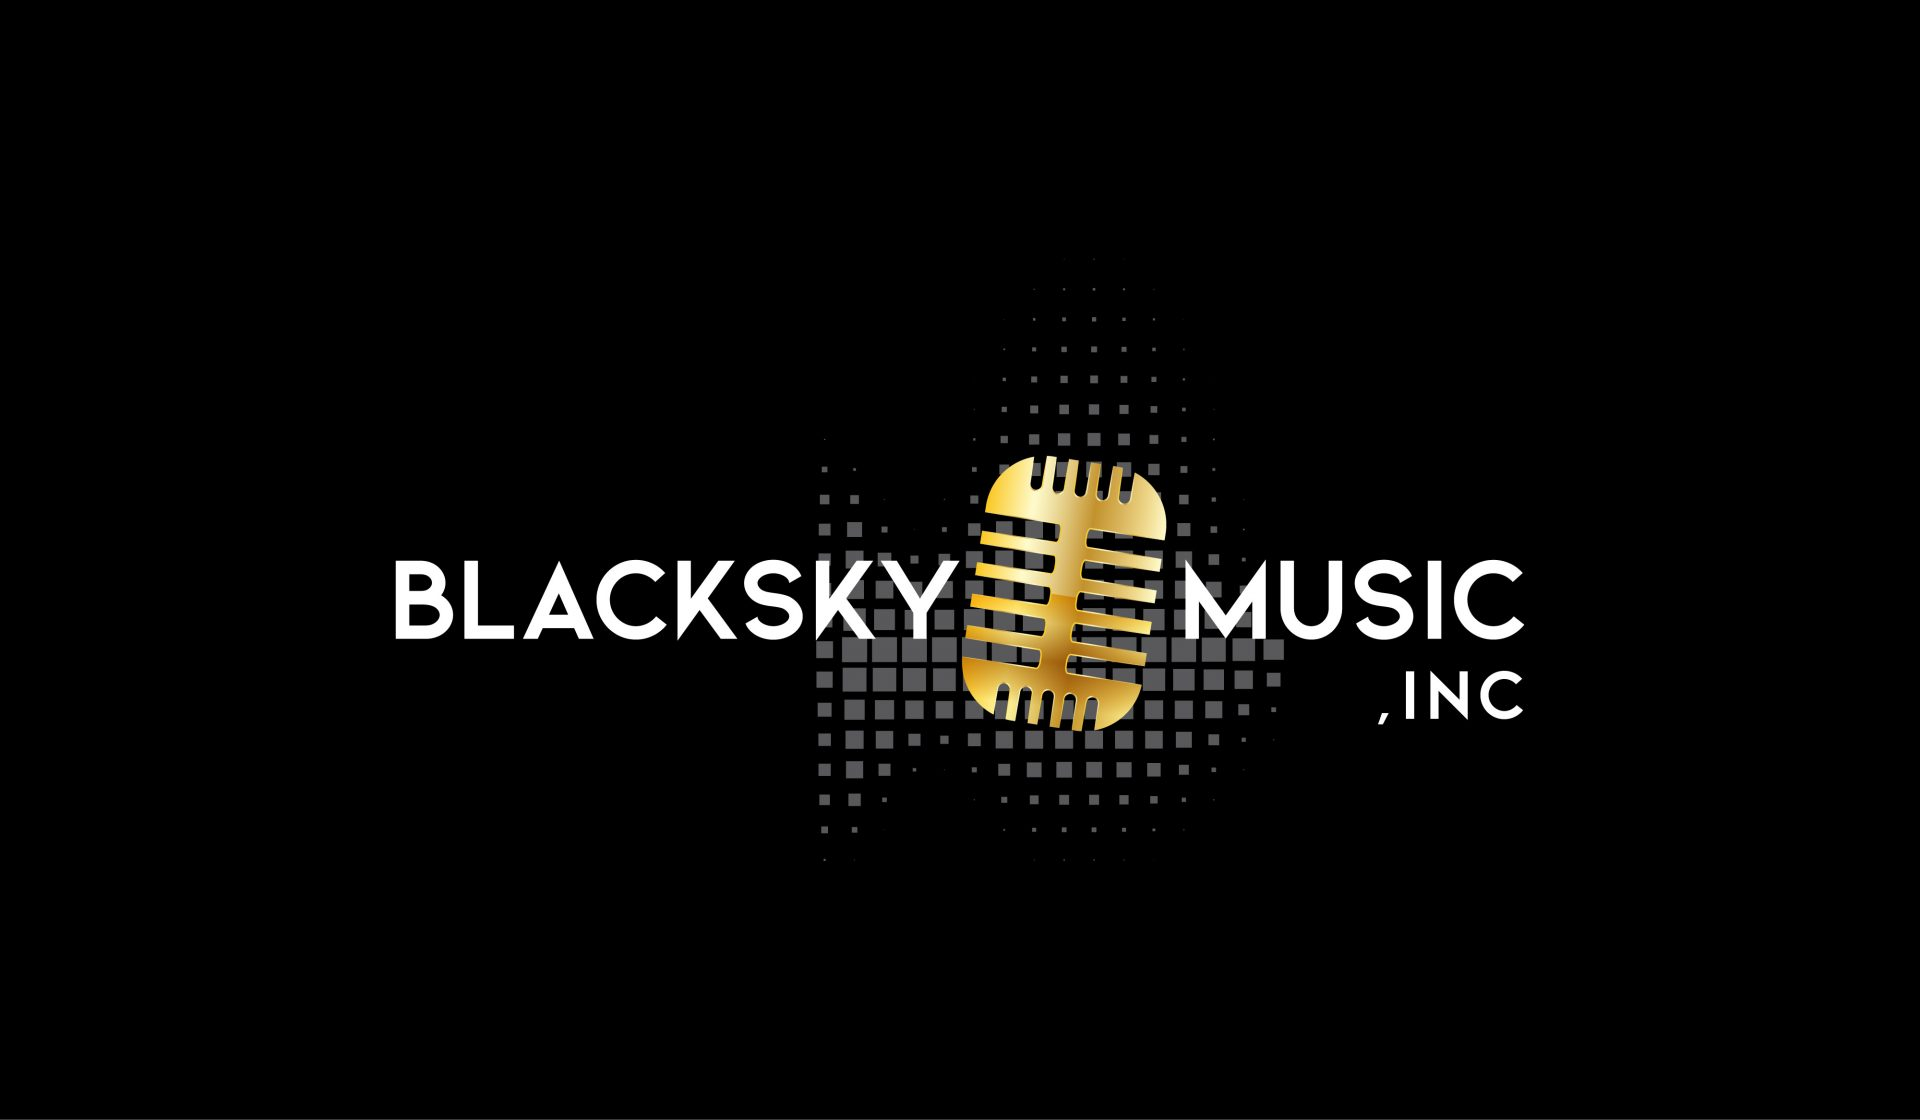 BlackSky Music Entertainment, Inc.